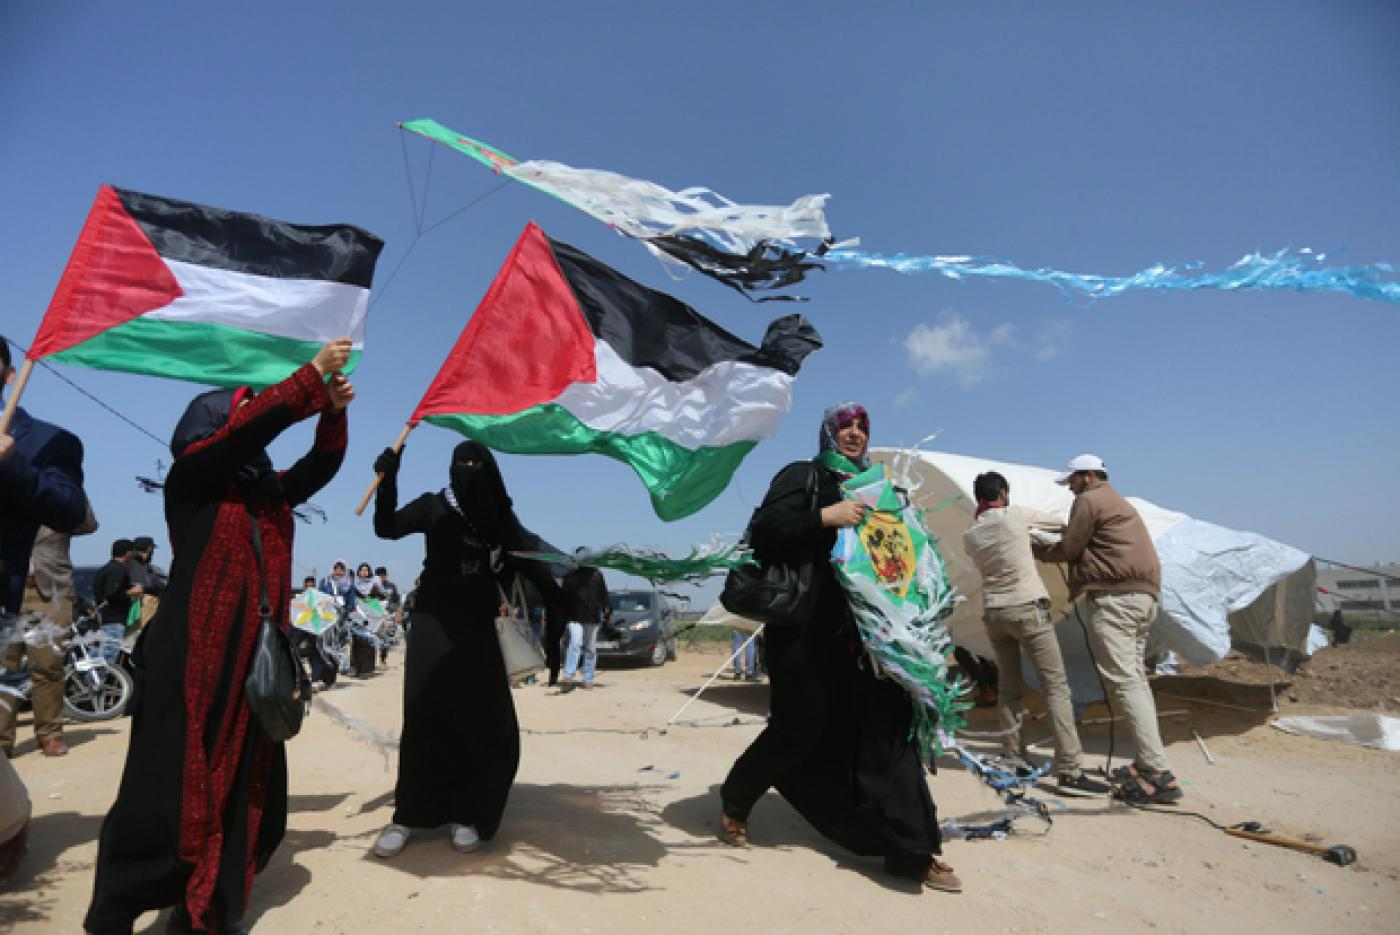 A ceasefire called on Saturday by Hamas, which governs Gaza, continues to  be met (MEE/Mohammed Asad)